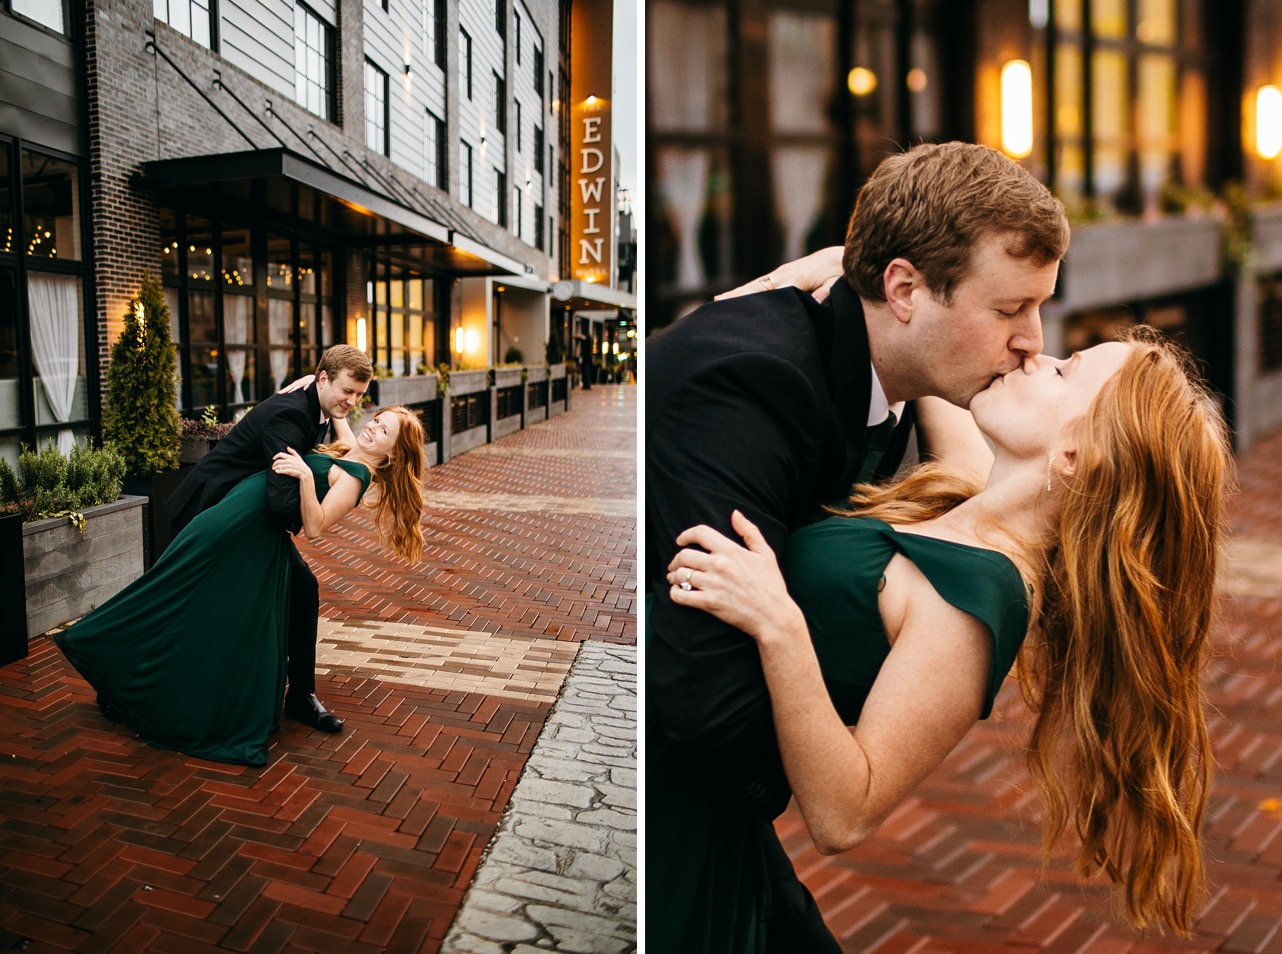 A man dips and kisses his fiancé wearing an emerald gown on a street in downtown Chattanooga.